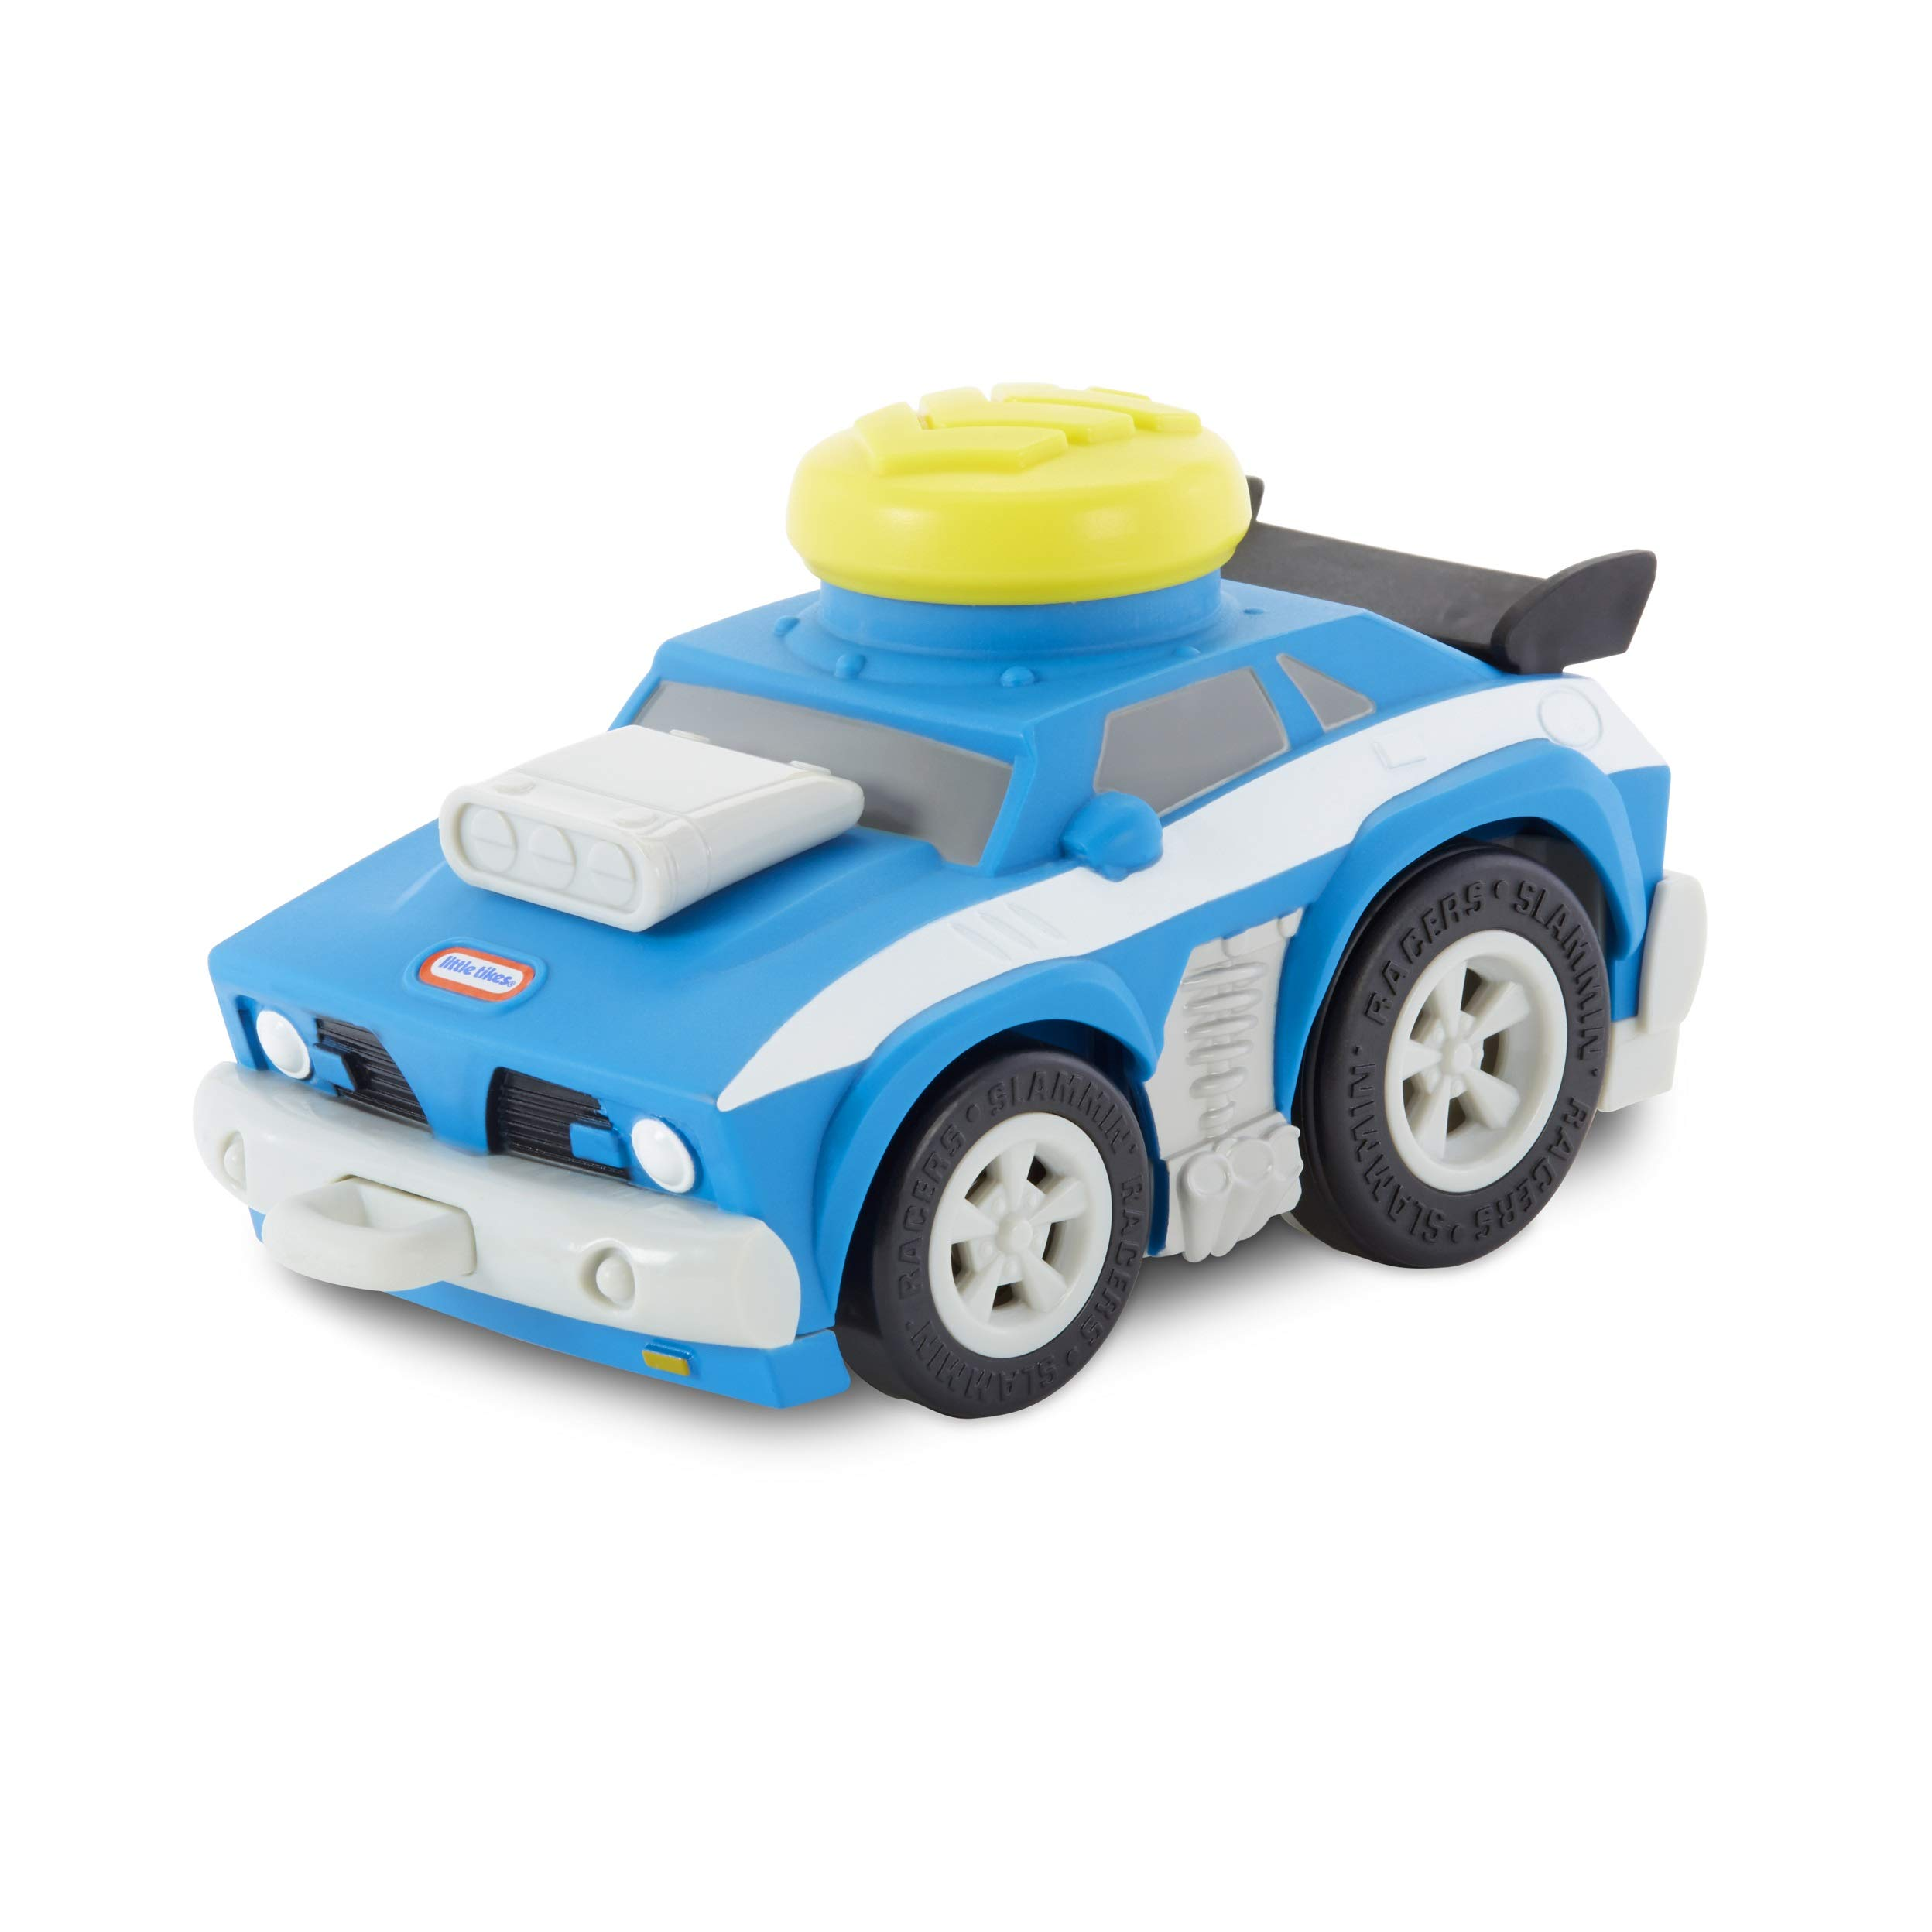 Little Tikes Slammin' Racers Muscle Car Vehicle with Sounds by Little Tikes